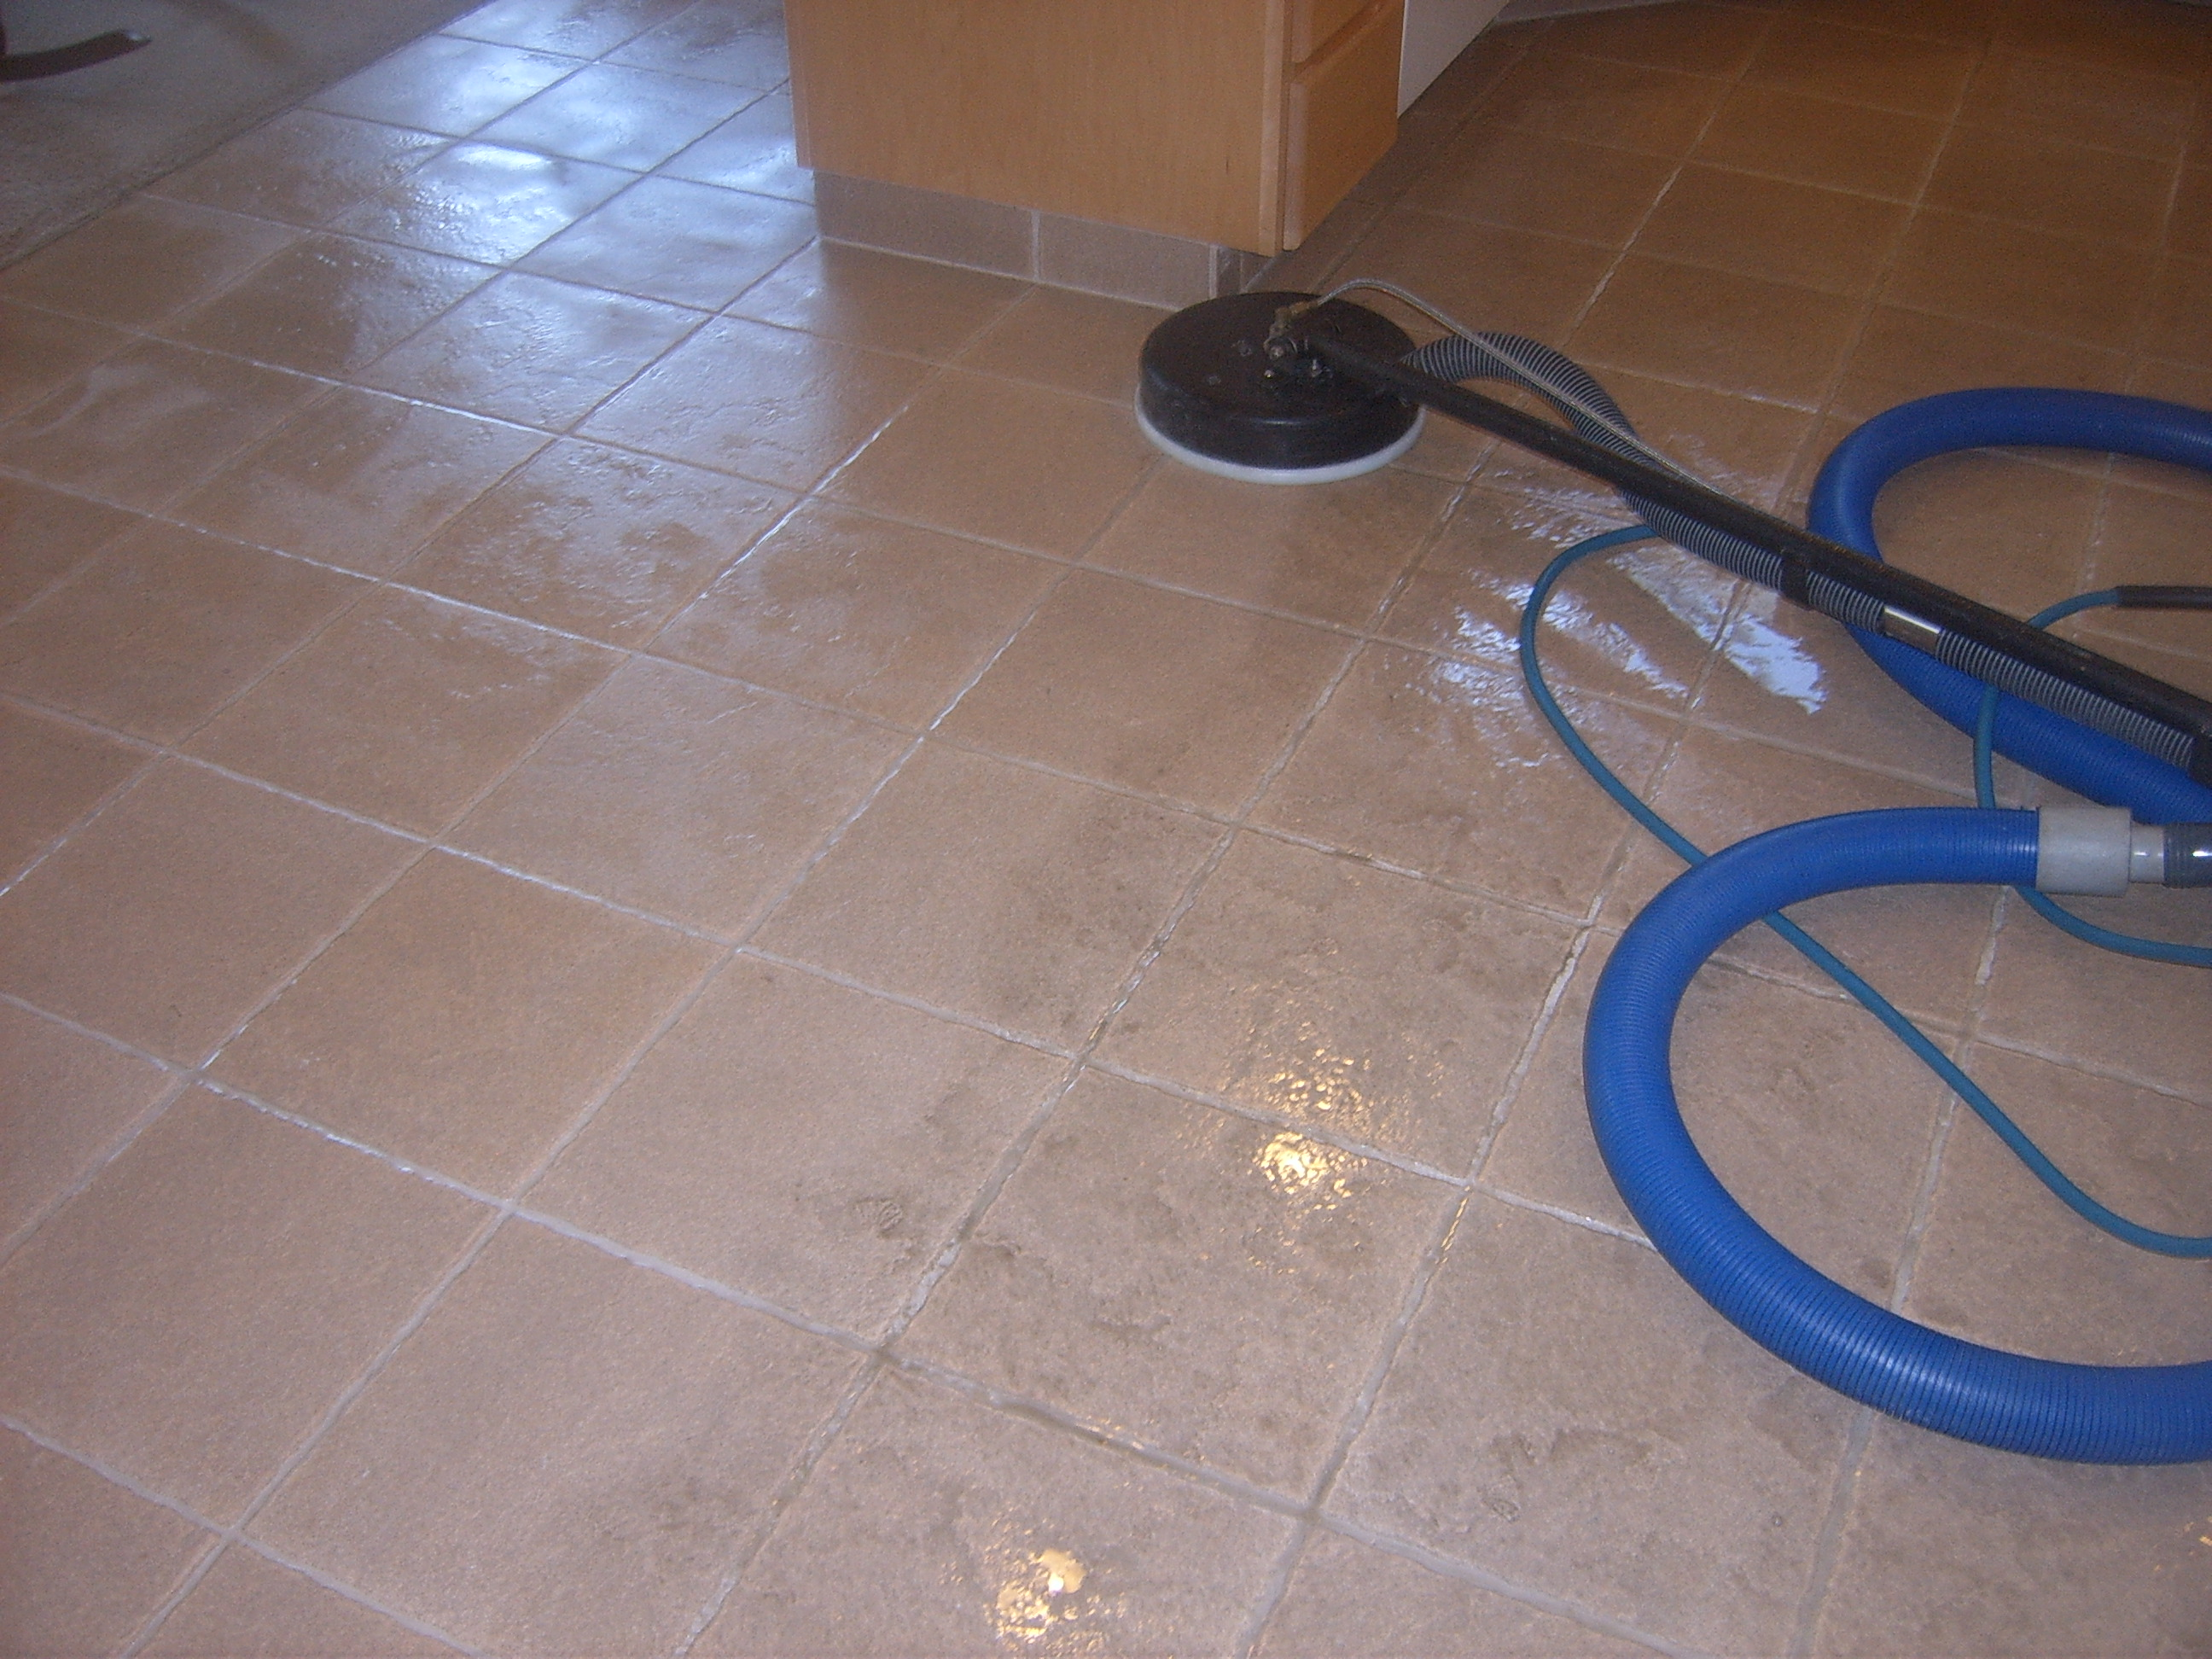 Rainbow Carpet Cleaning - Ceramic Tile & Grout Cleaning